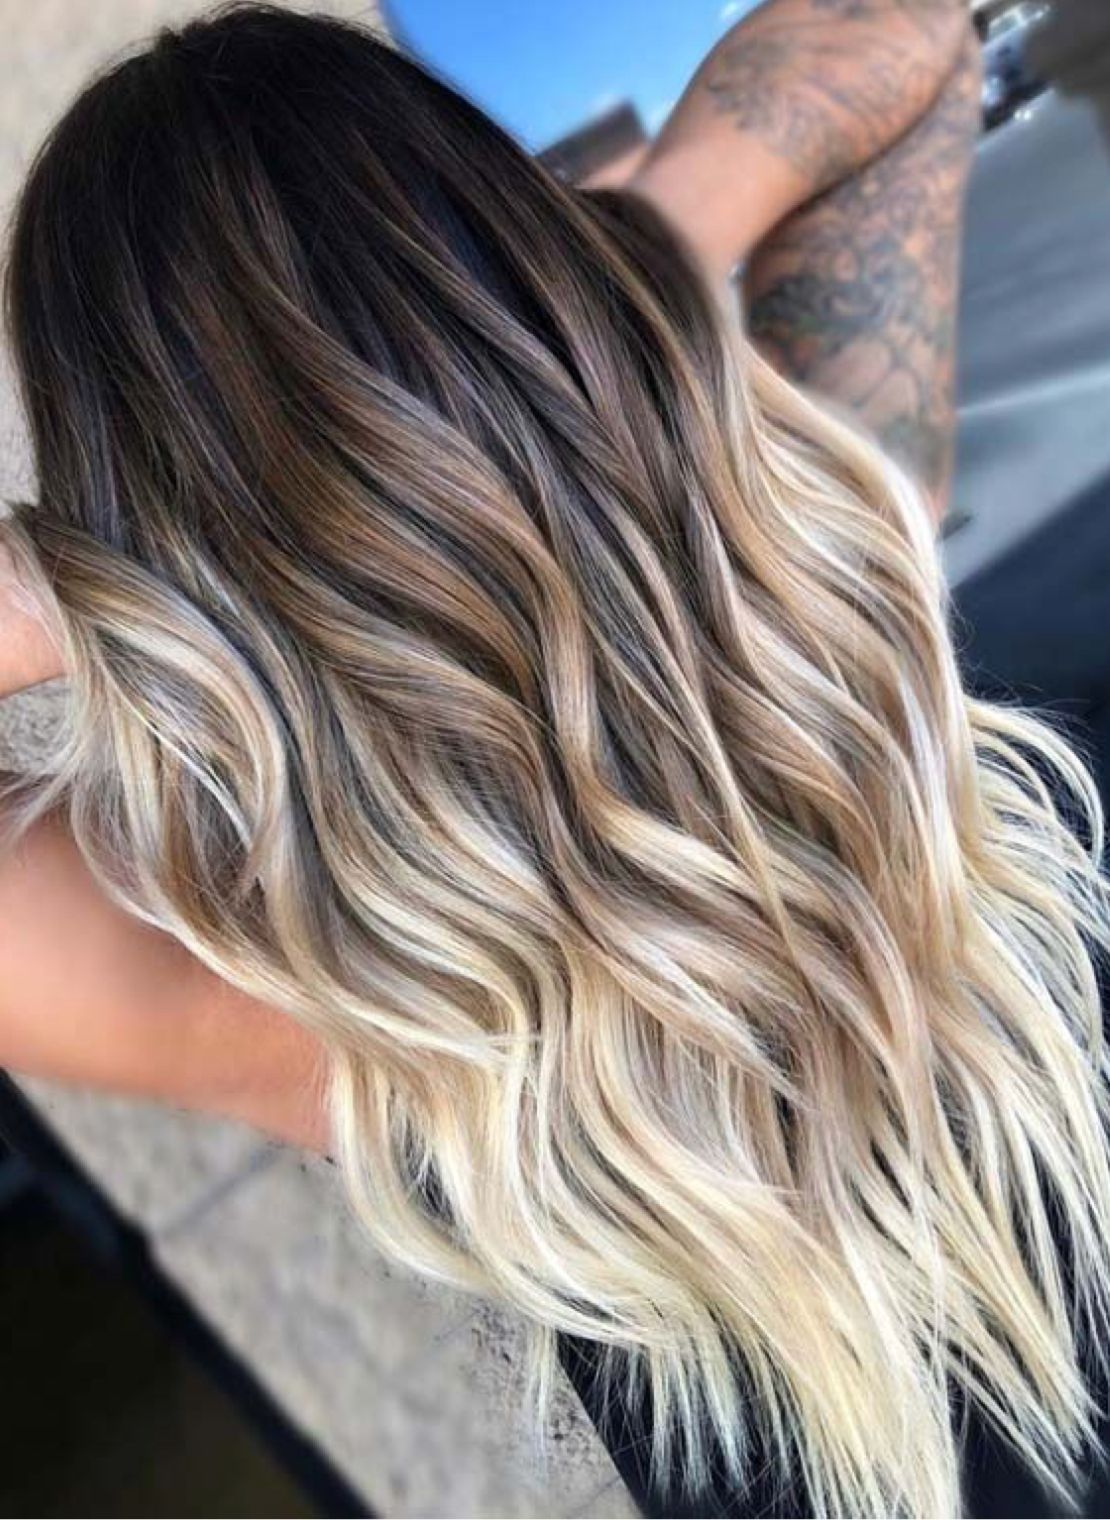 Summer Time Hair Ombre Hair Blonde Hair Styles Balayage Hair